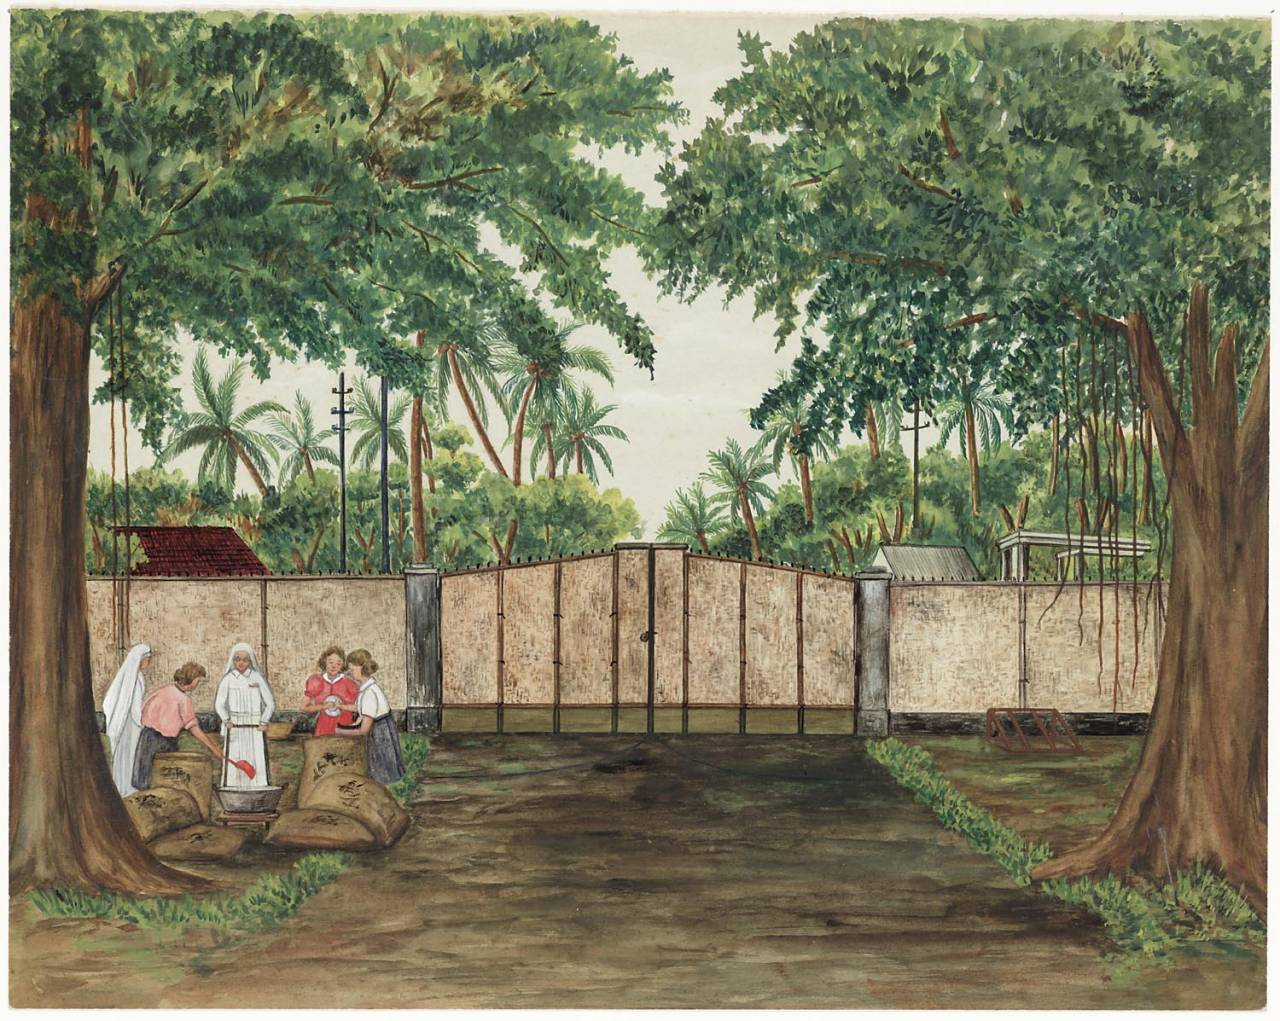 "maker creator: Horak J. Manufacture Year 1944 Period WWII Description Watercolor with in the foreground a road between high trees. The road leads to a closed gate. Behind the gate dense tropical vegetation and a few roofs. On the left two nuns and three women in some pockets. One of the women creates rice in a bowl. On the back: ""Input Solo Camp 1944. Mother Theresa (Schriks) with Sr. Anna and some ladies get sacks of rice for the camp."""